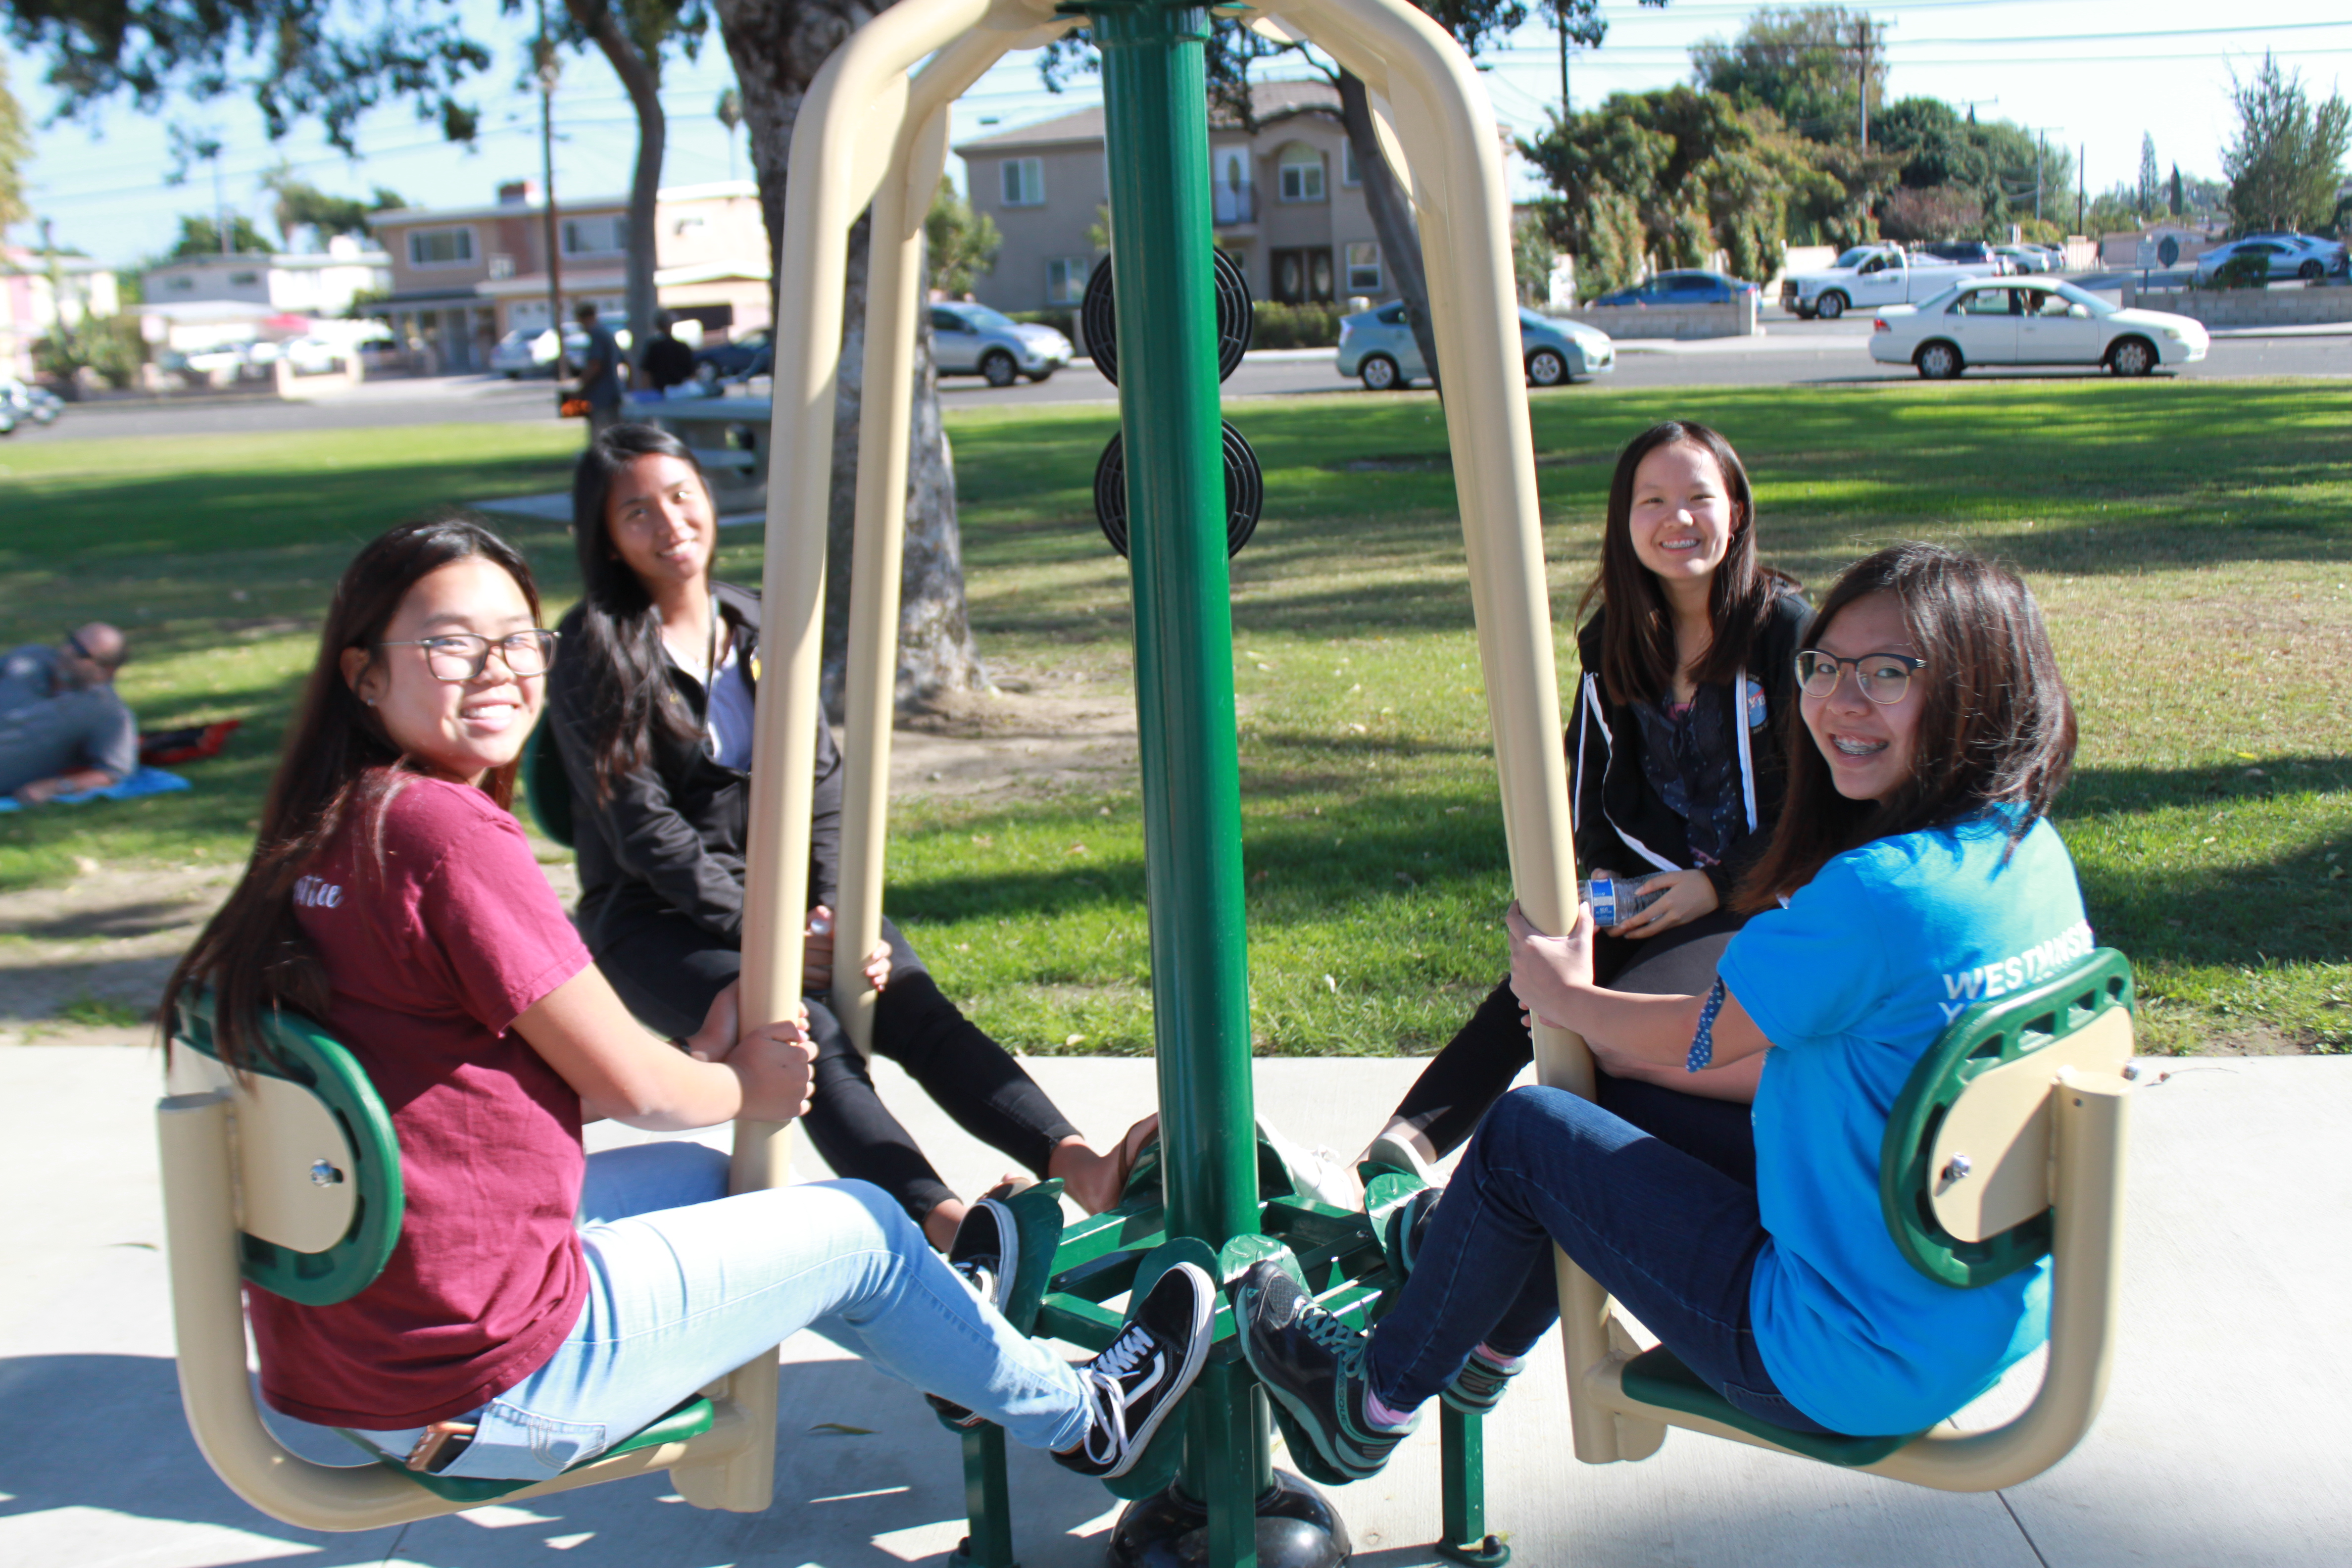 Smiling teenagers using outdoor exercise equipment